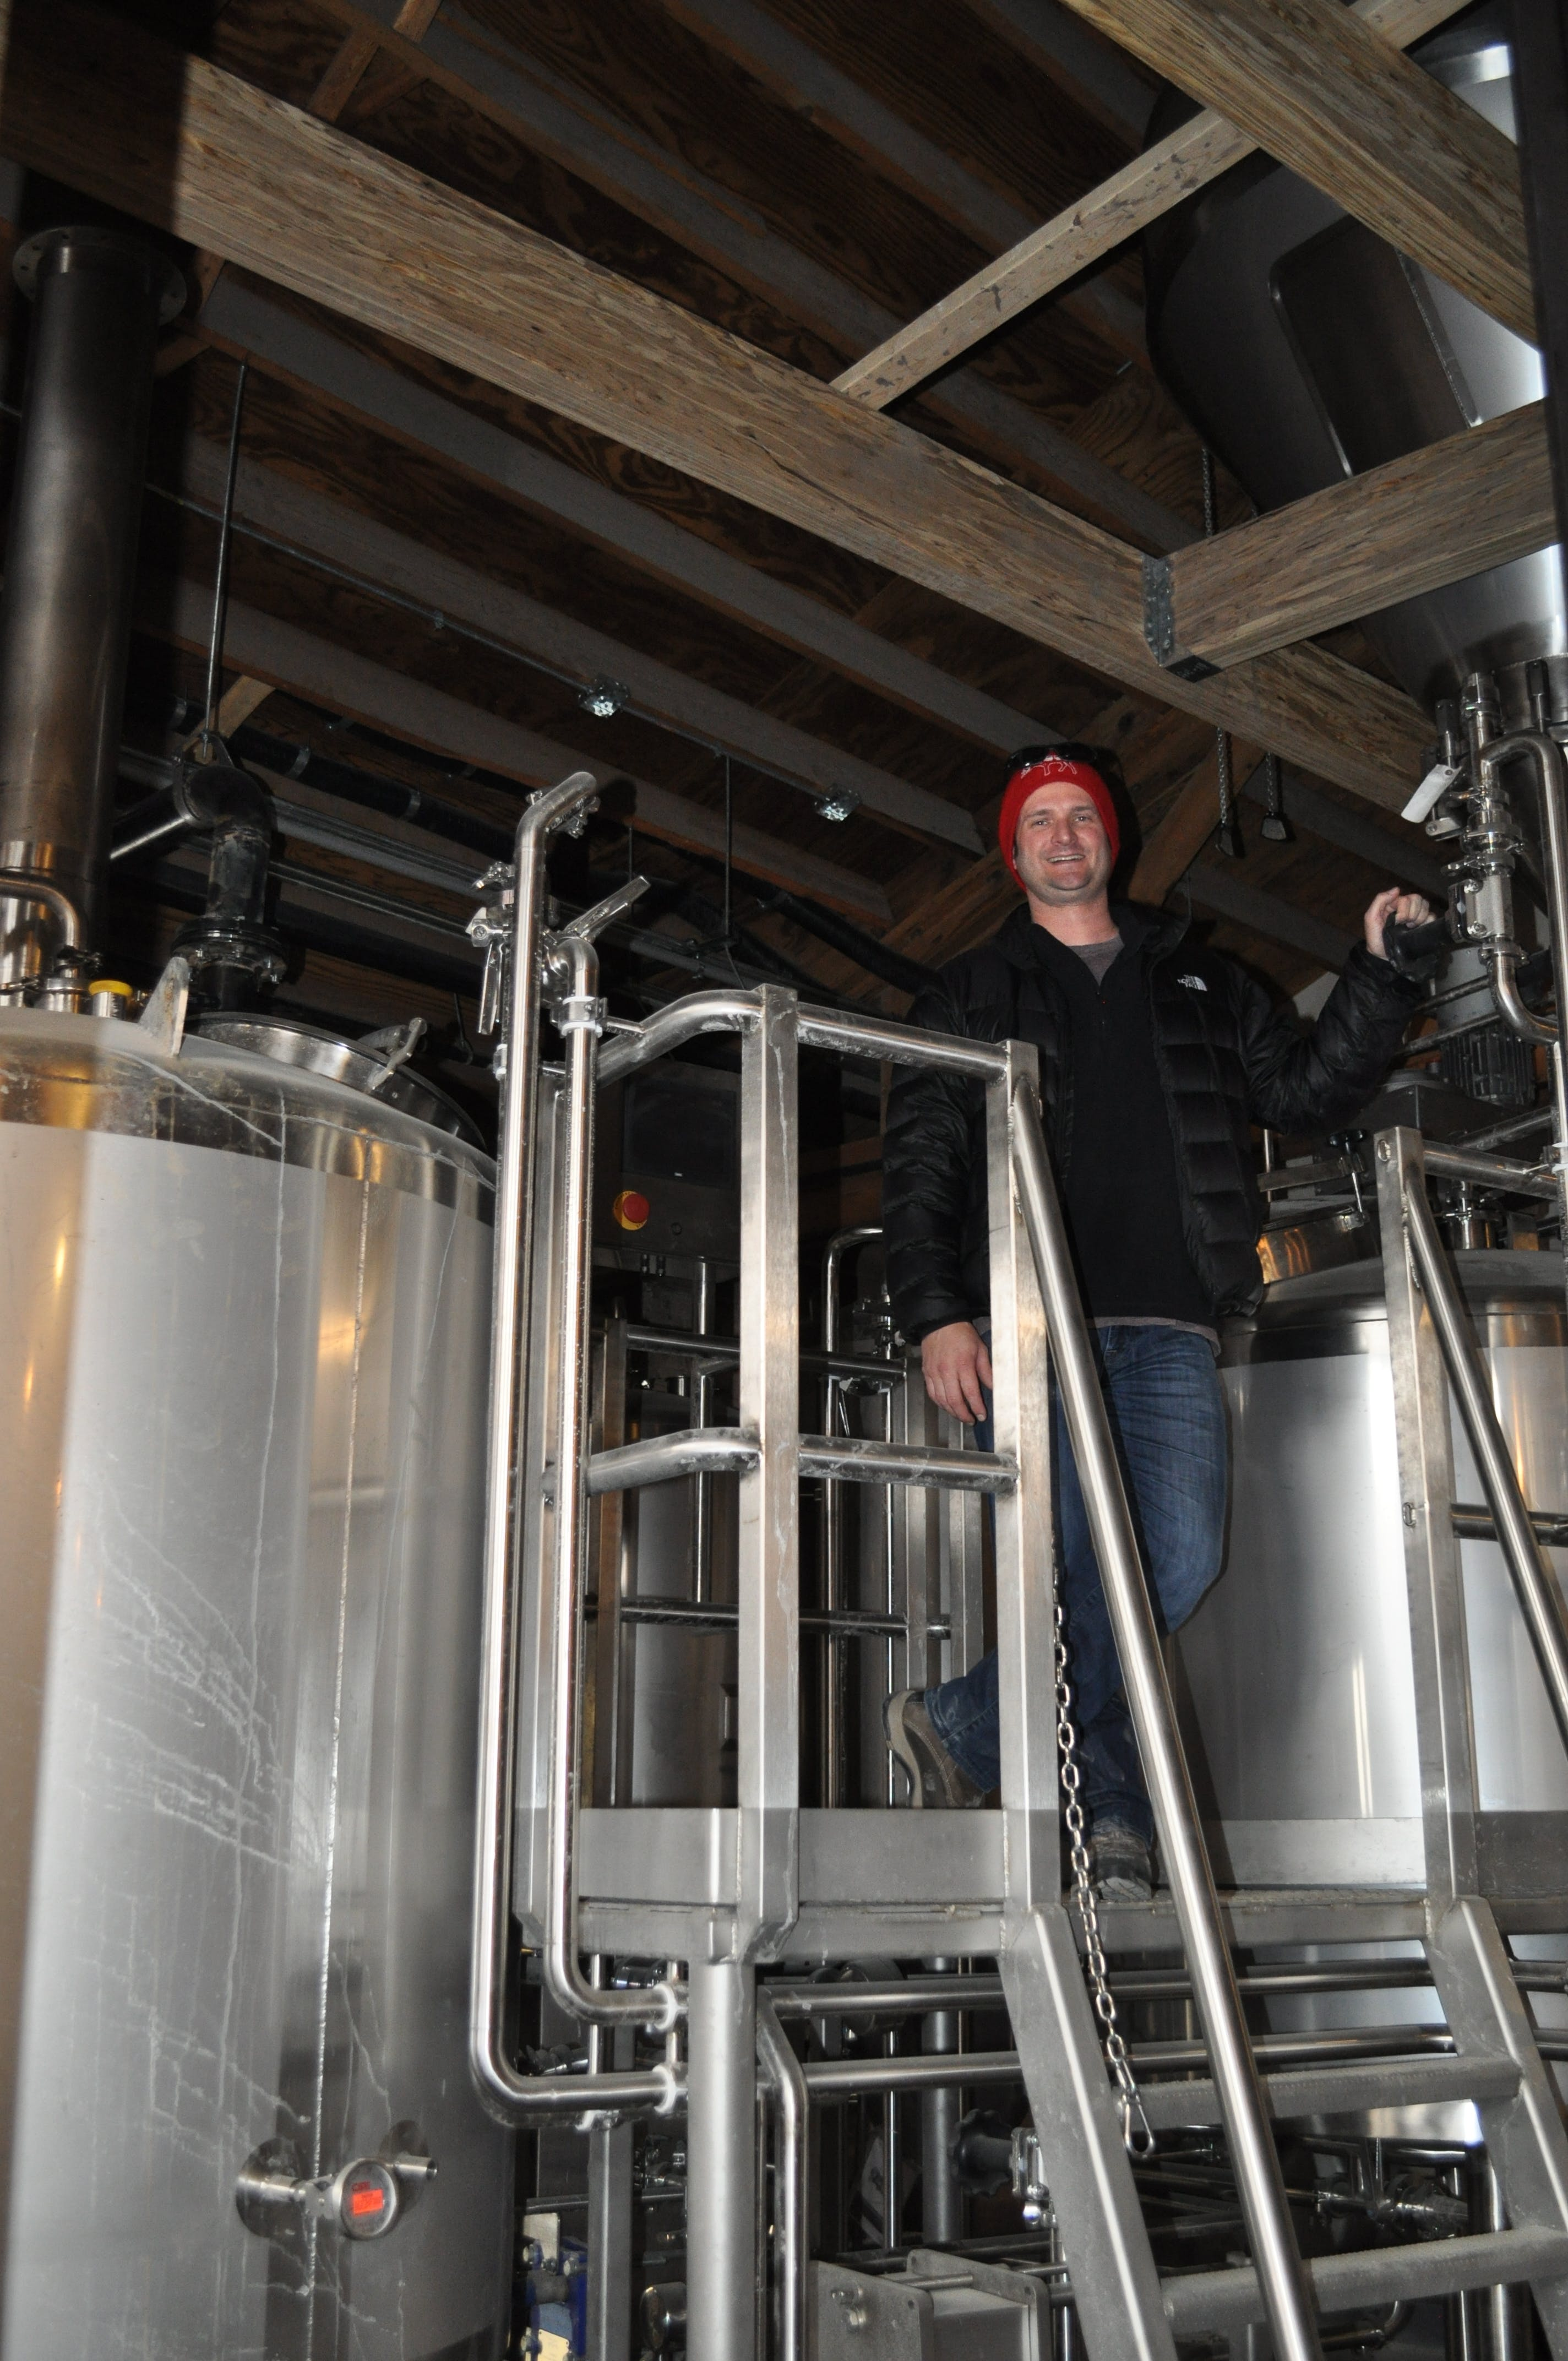 10 BBL Brewhouse Brewhouse sold by W. M. Sprinkman